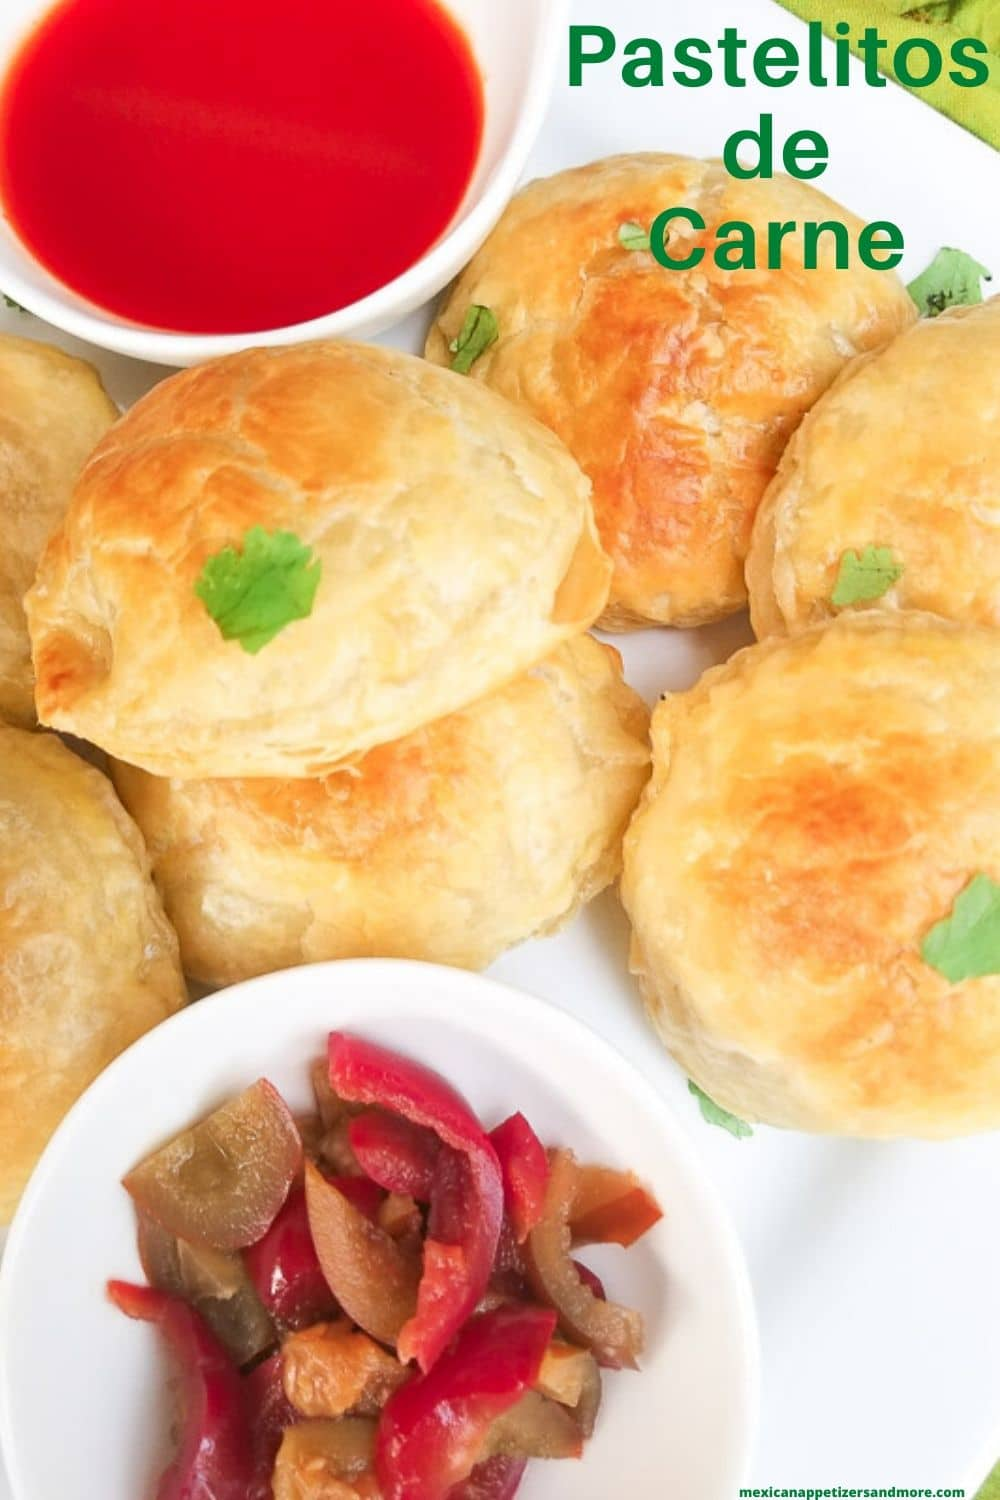 Pastelitos de Carne (Puff Pastry with Meat Filling)